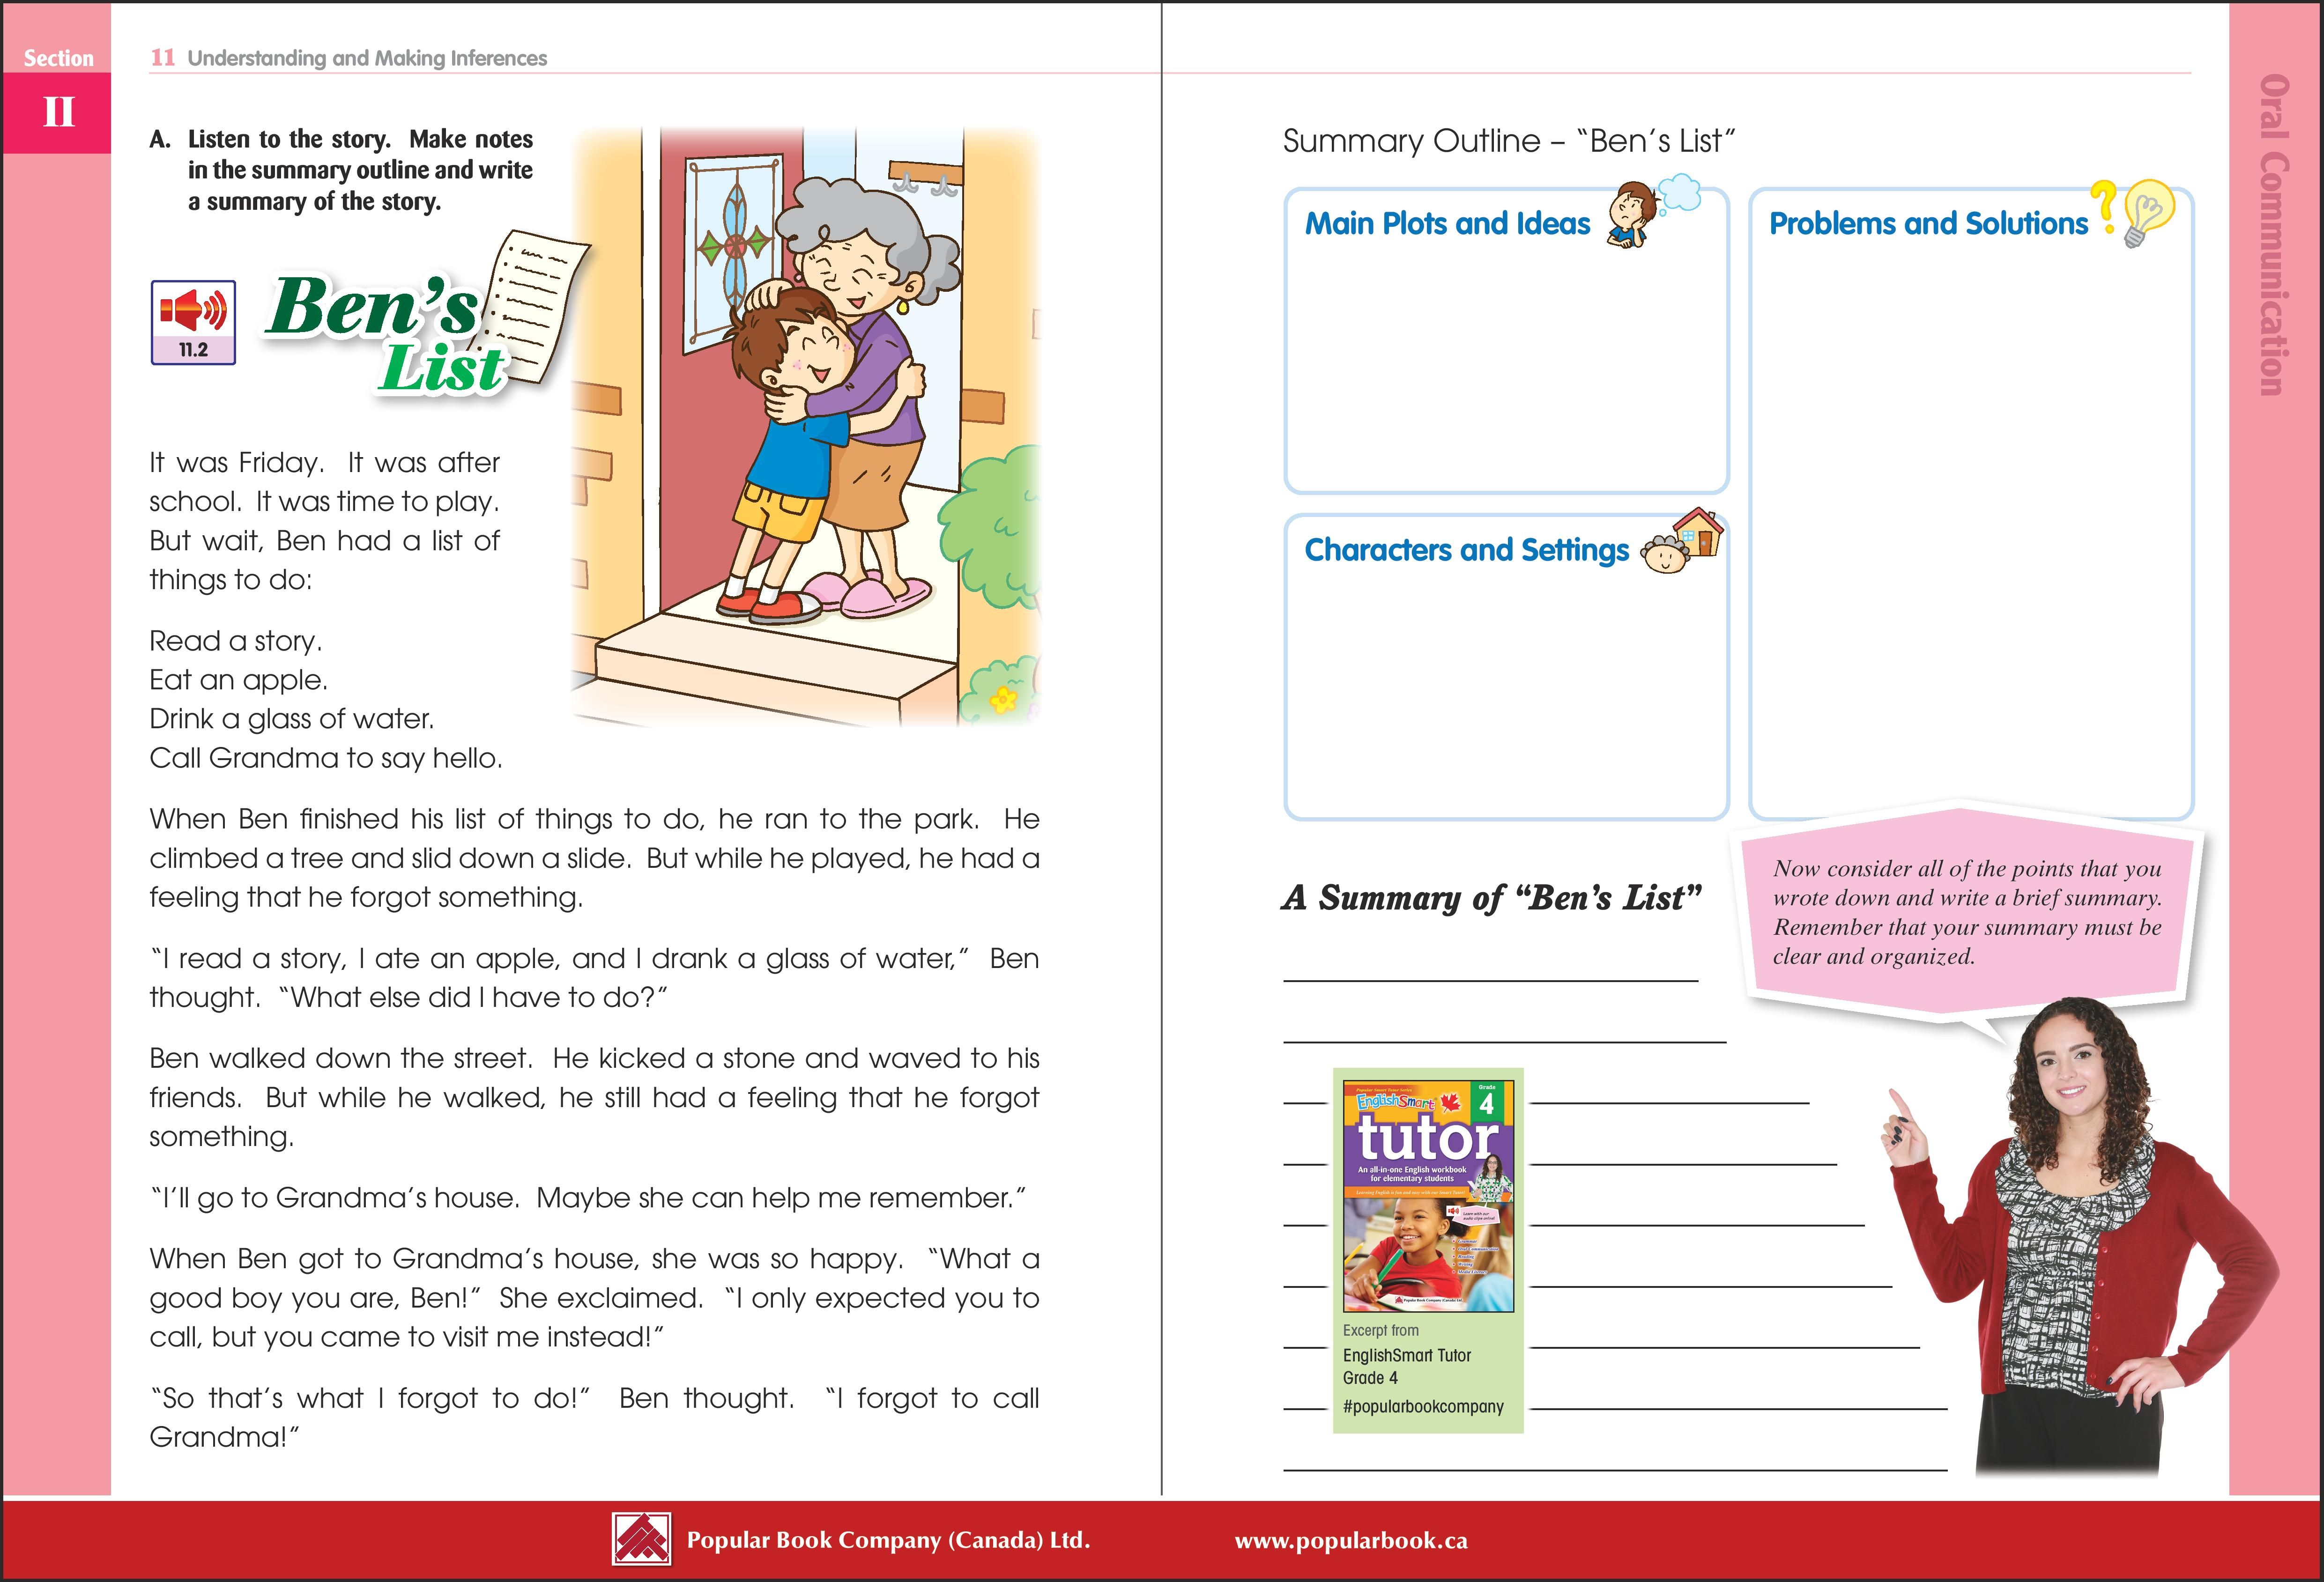 Download the free sample pages from EnglishSmart Tutor Grade